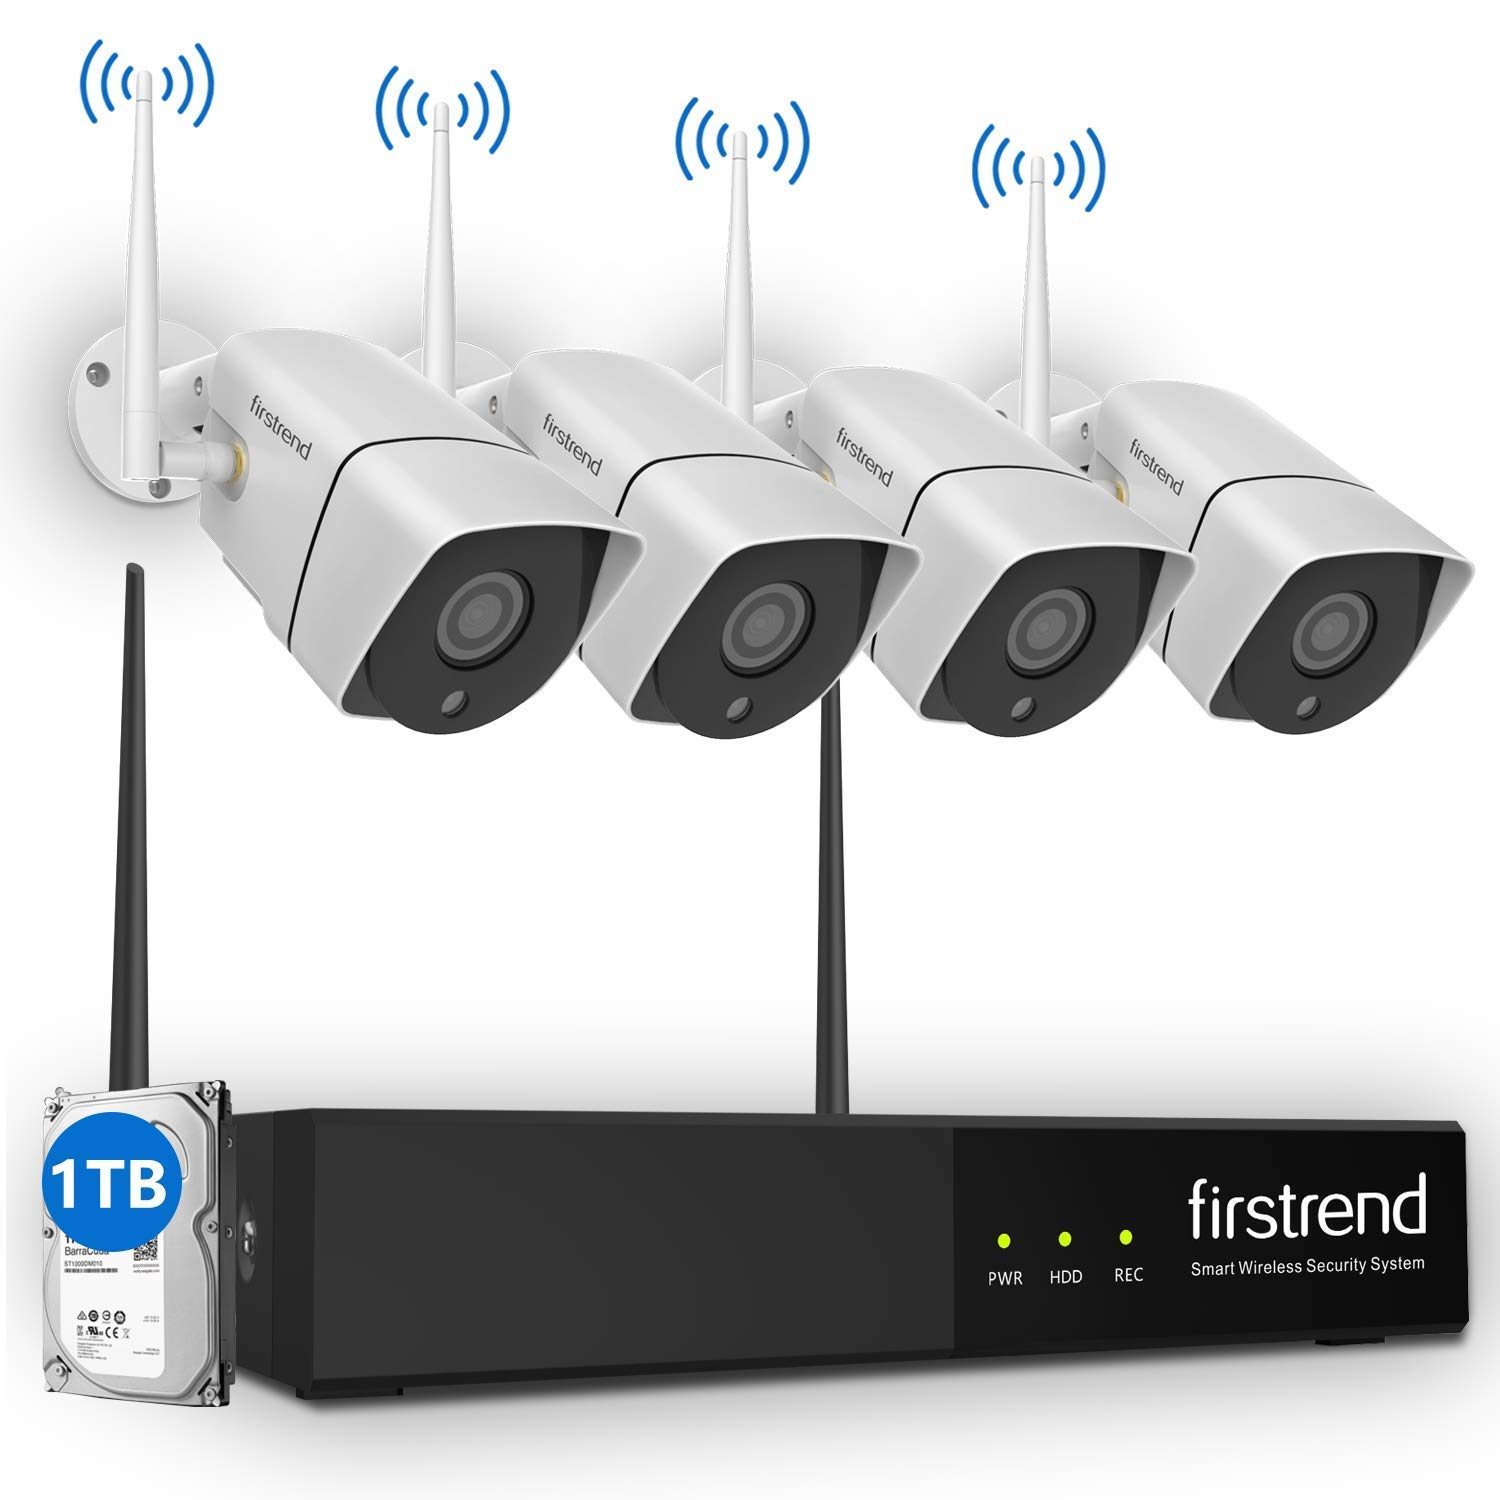 Wireless Security Camera System,Firstrend HD Video Security System with 4PCS 960P IP Security Camera with 1TB Hard Drive Installed Indoor Outdoor IP66 Waterproof 65FT Night Vision